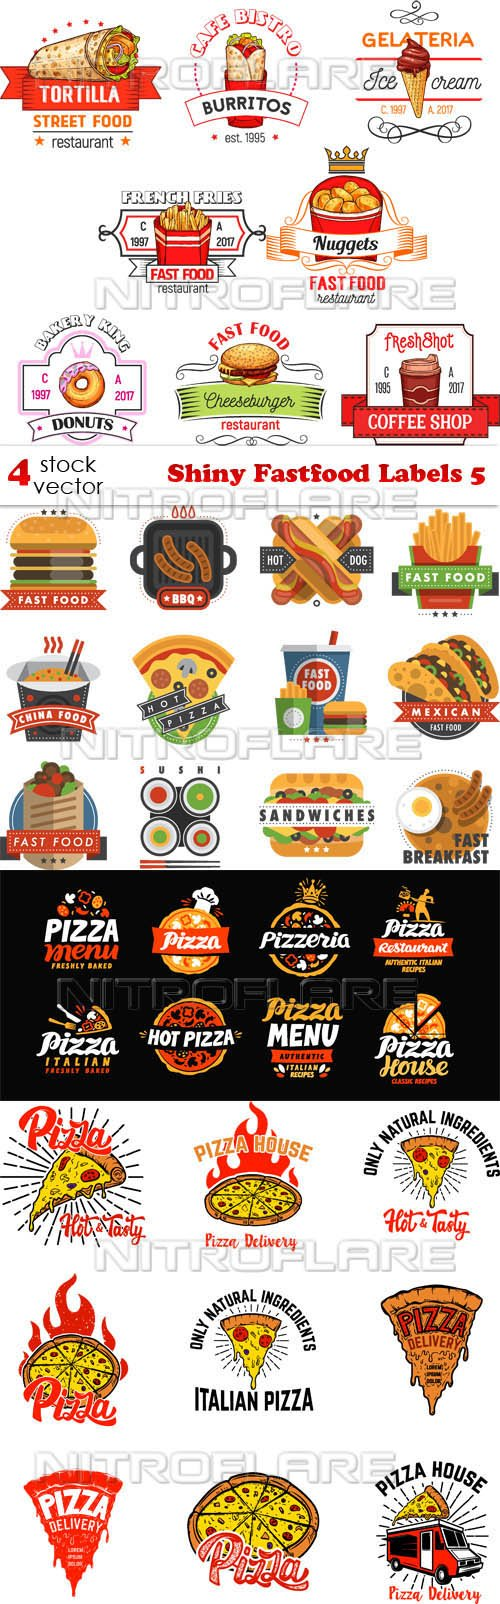 Vectors - Shiny Fastfood Labels 5